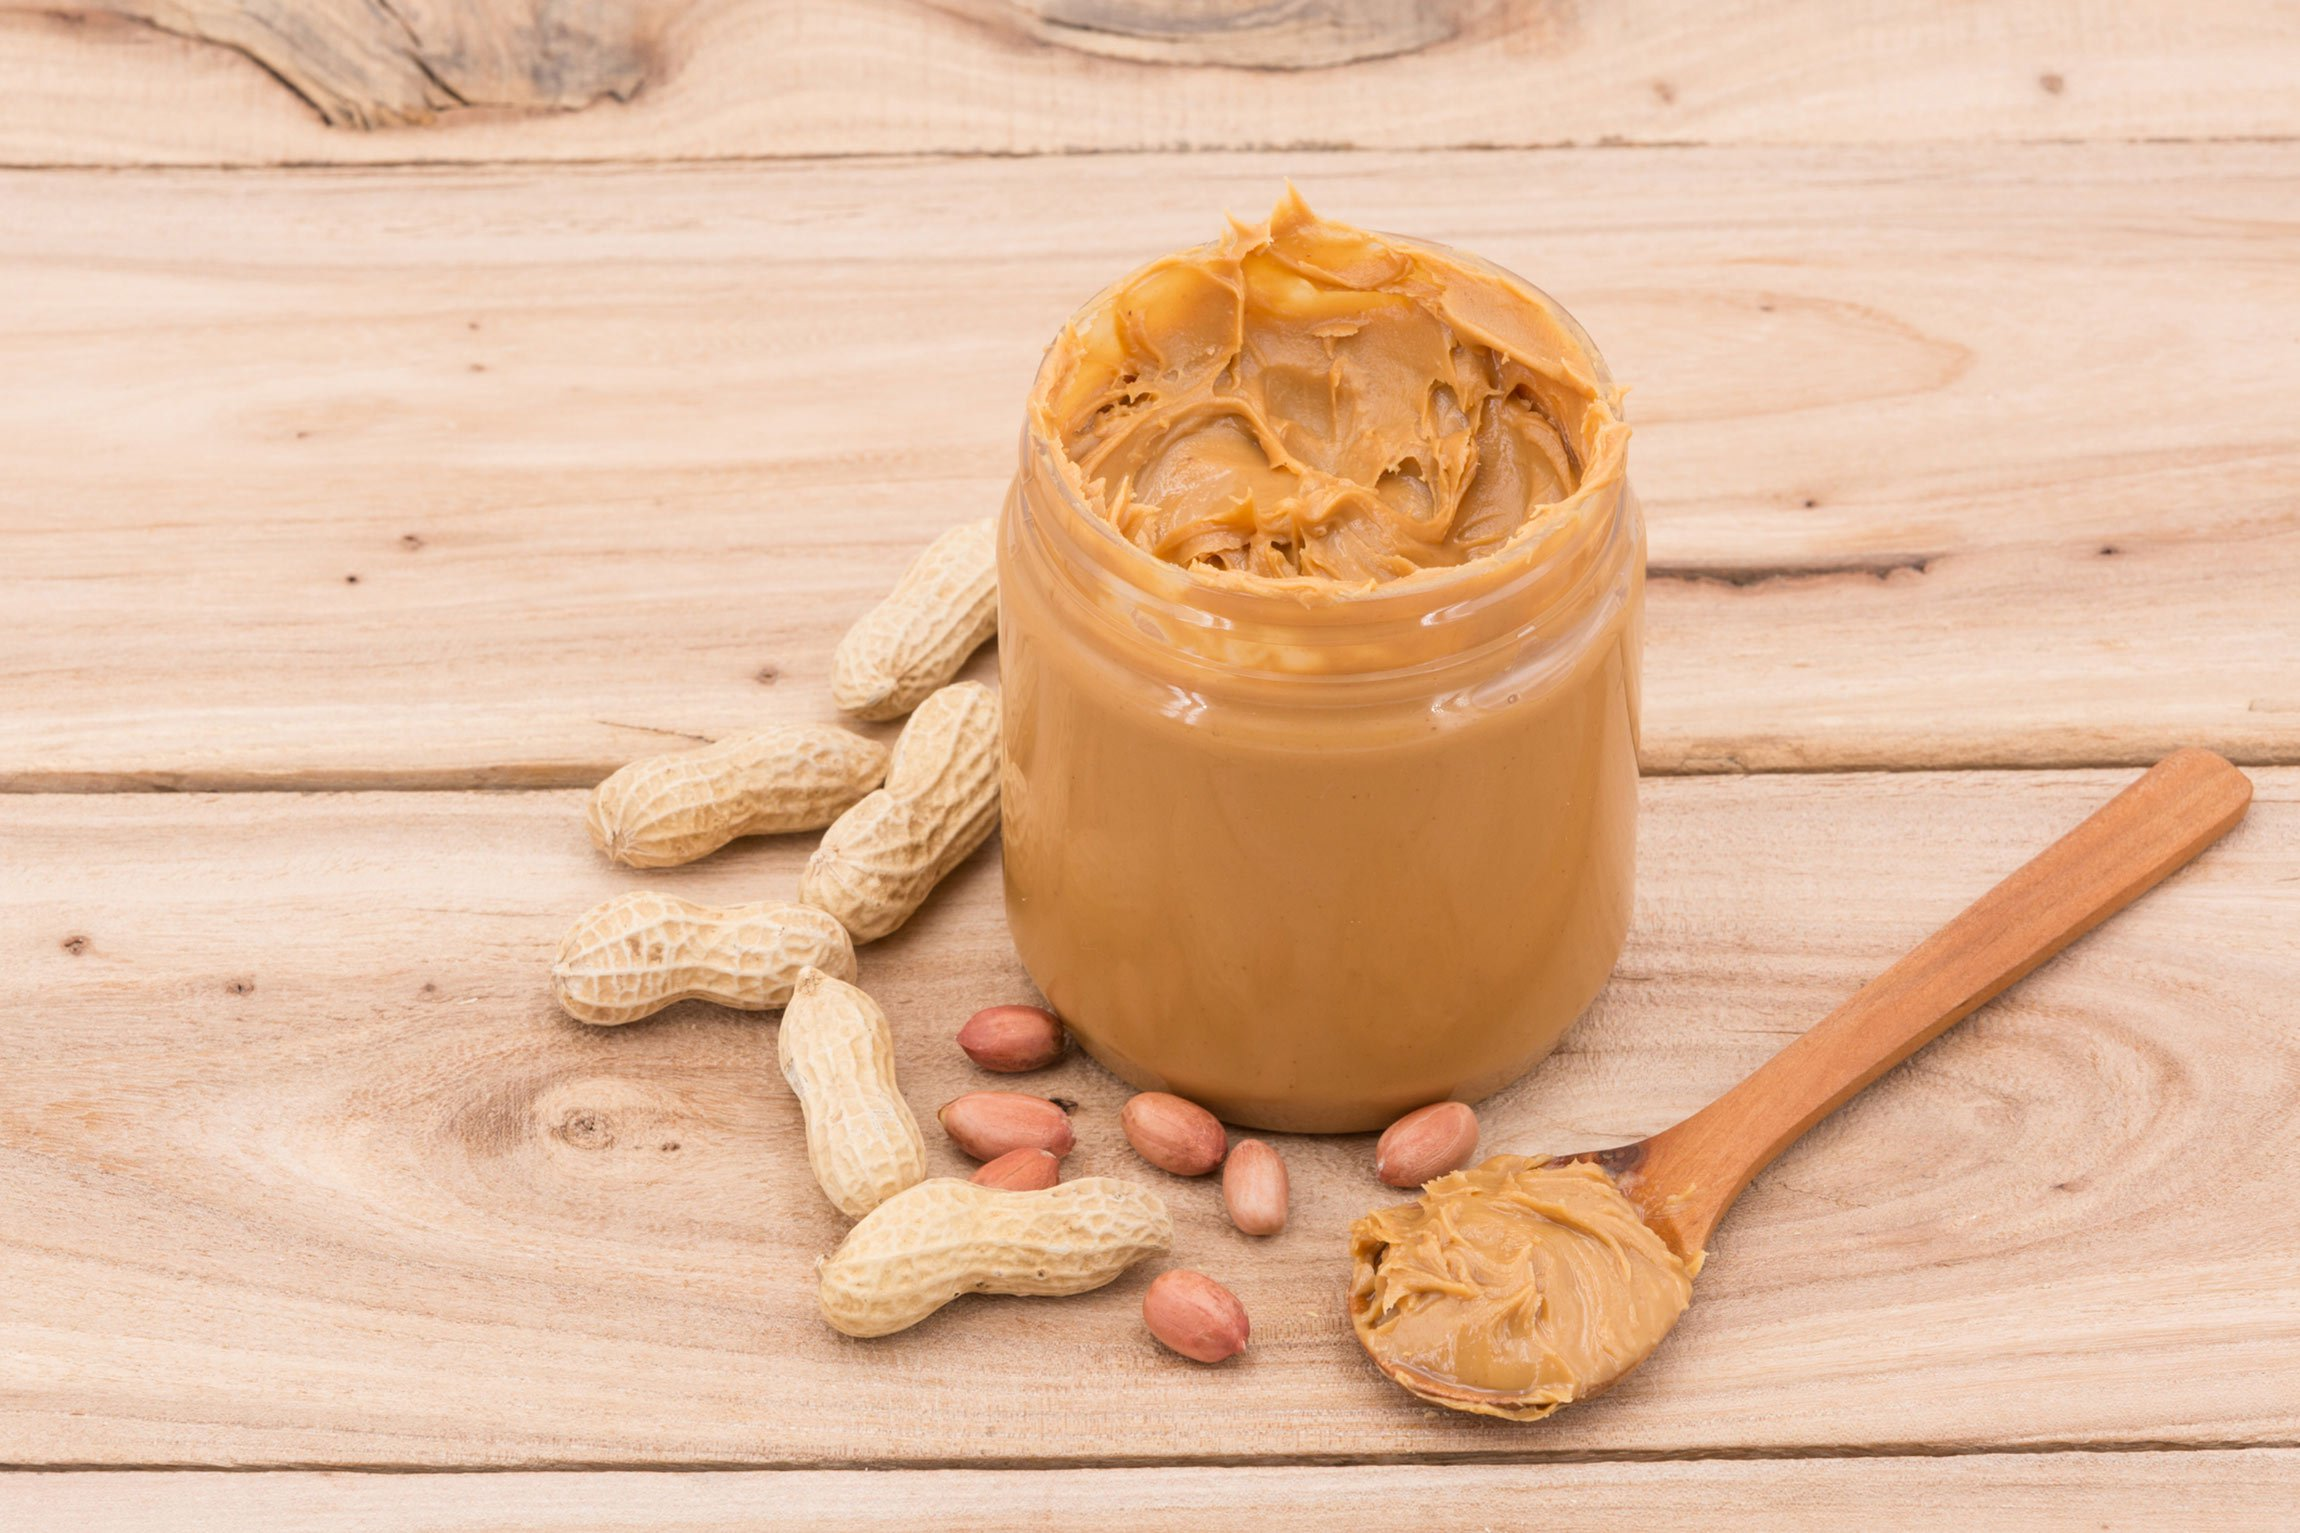 How to make peanut butter at home for babies